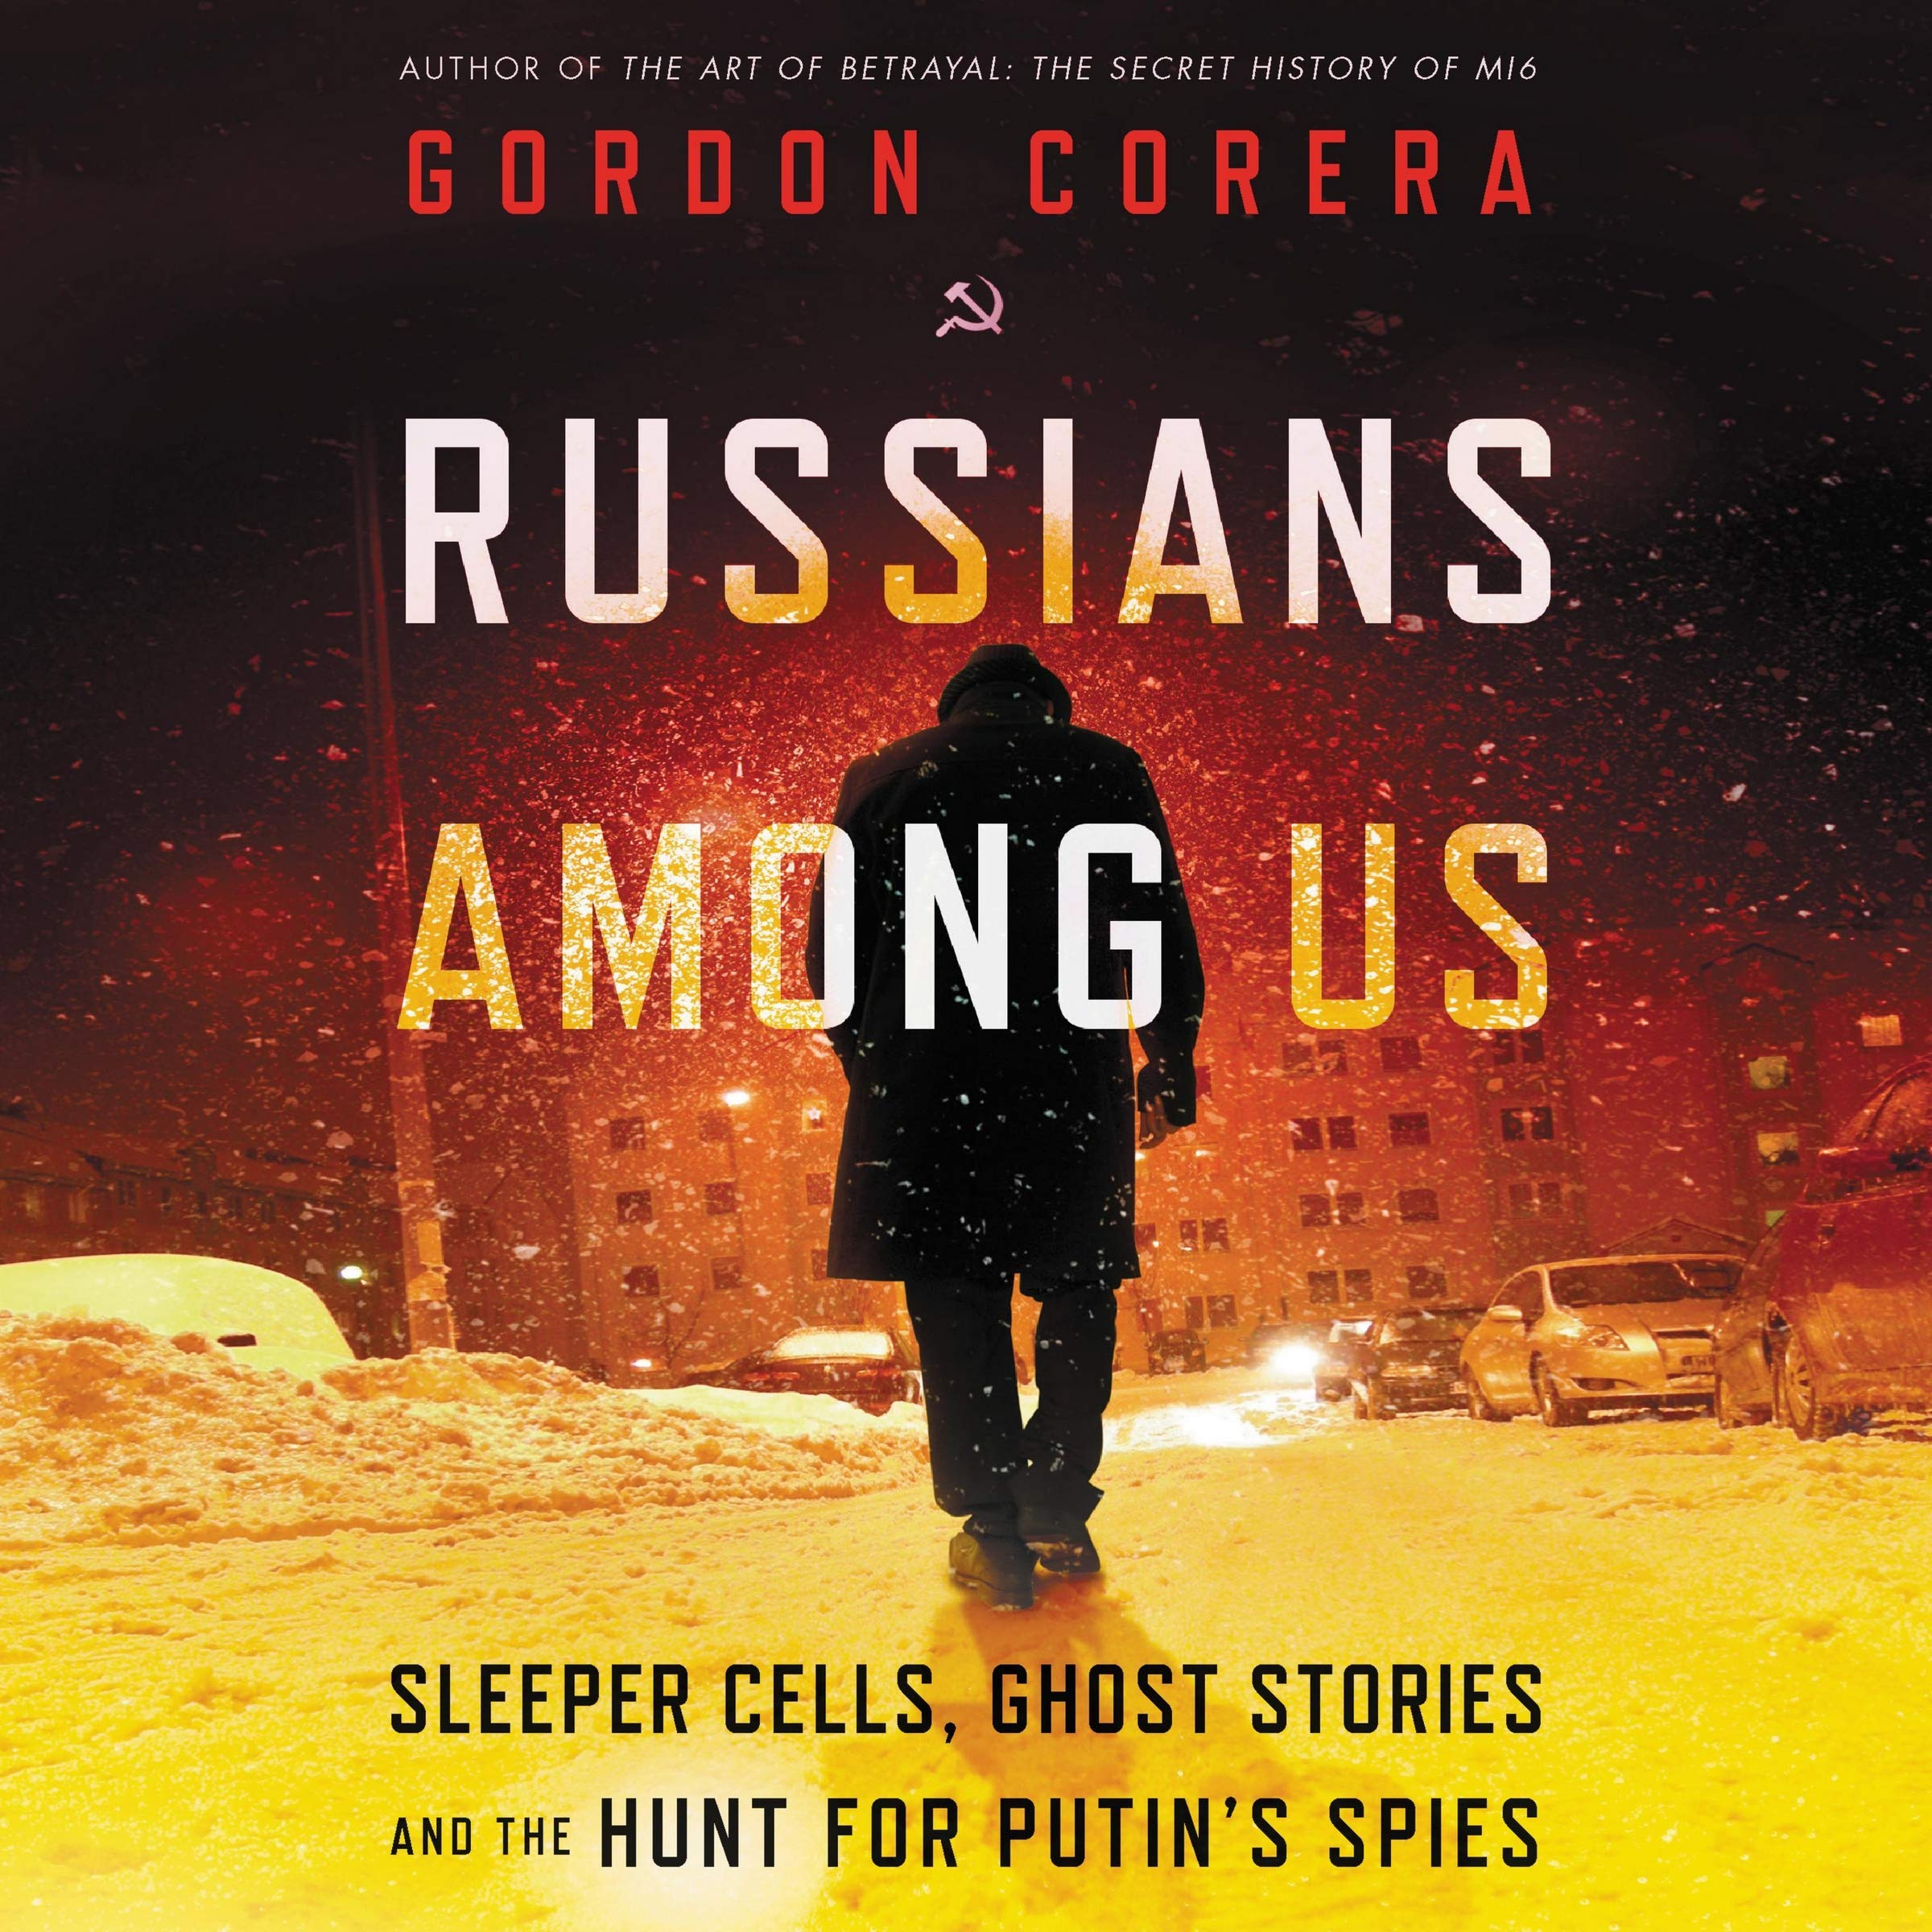 Amazon Fr Russians Among Us Sleeper Cells Ghost Stories And The Hunt For Putin S Spies Corera Gordon Perkins Derek Livres